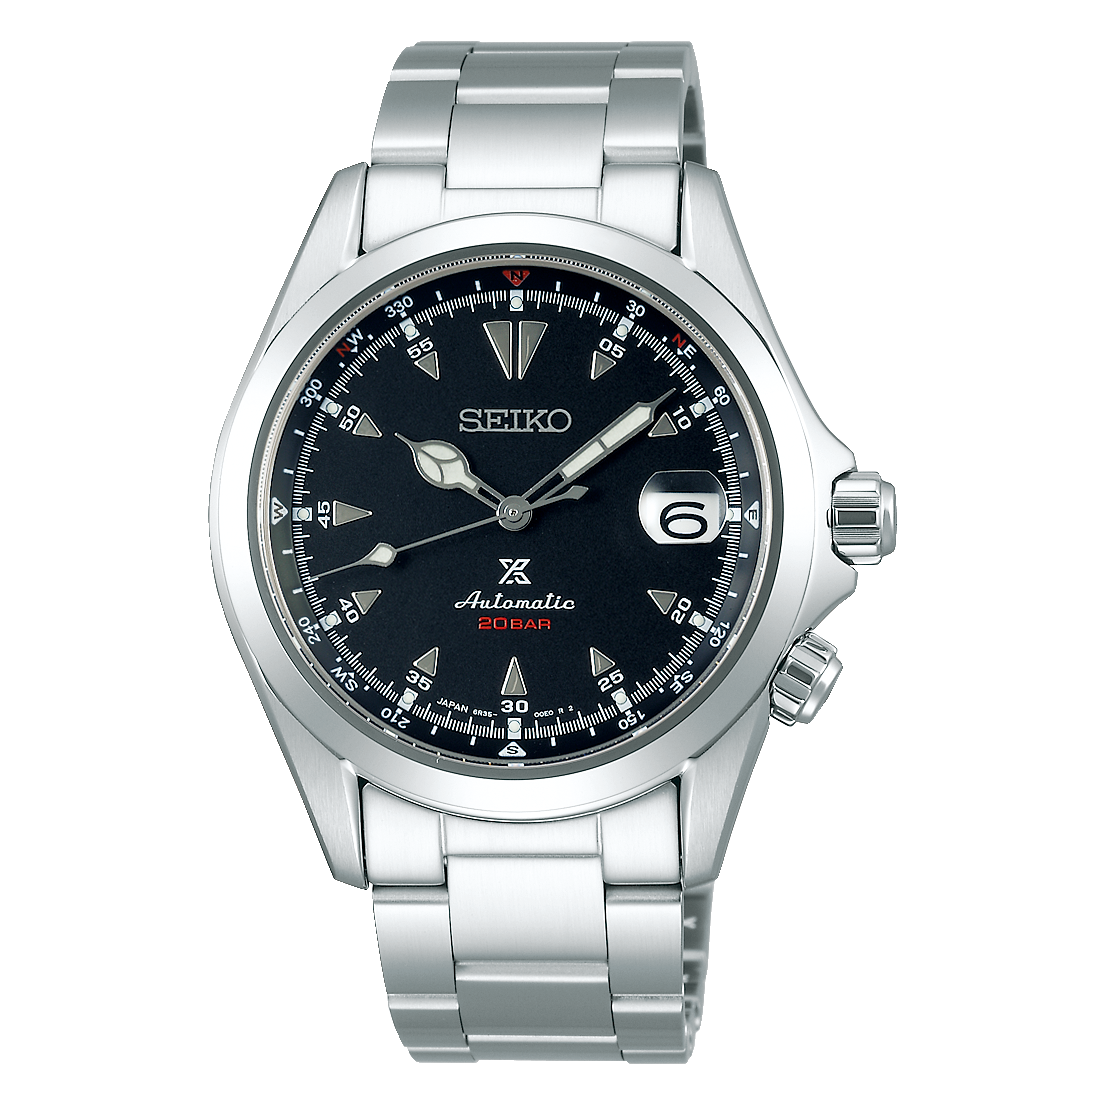 Seiko Prospex Stainless Steel Automatic 'Alpinist' With Manual Winding Capacity Watch (SPB117)